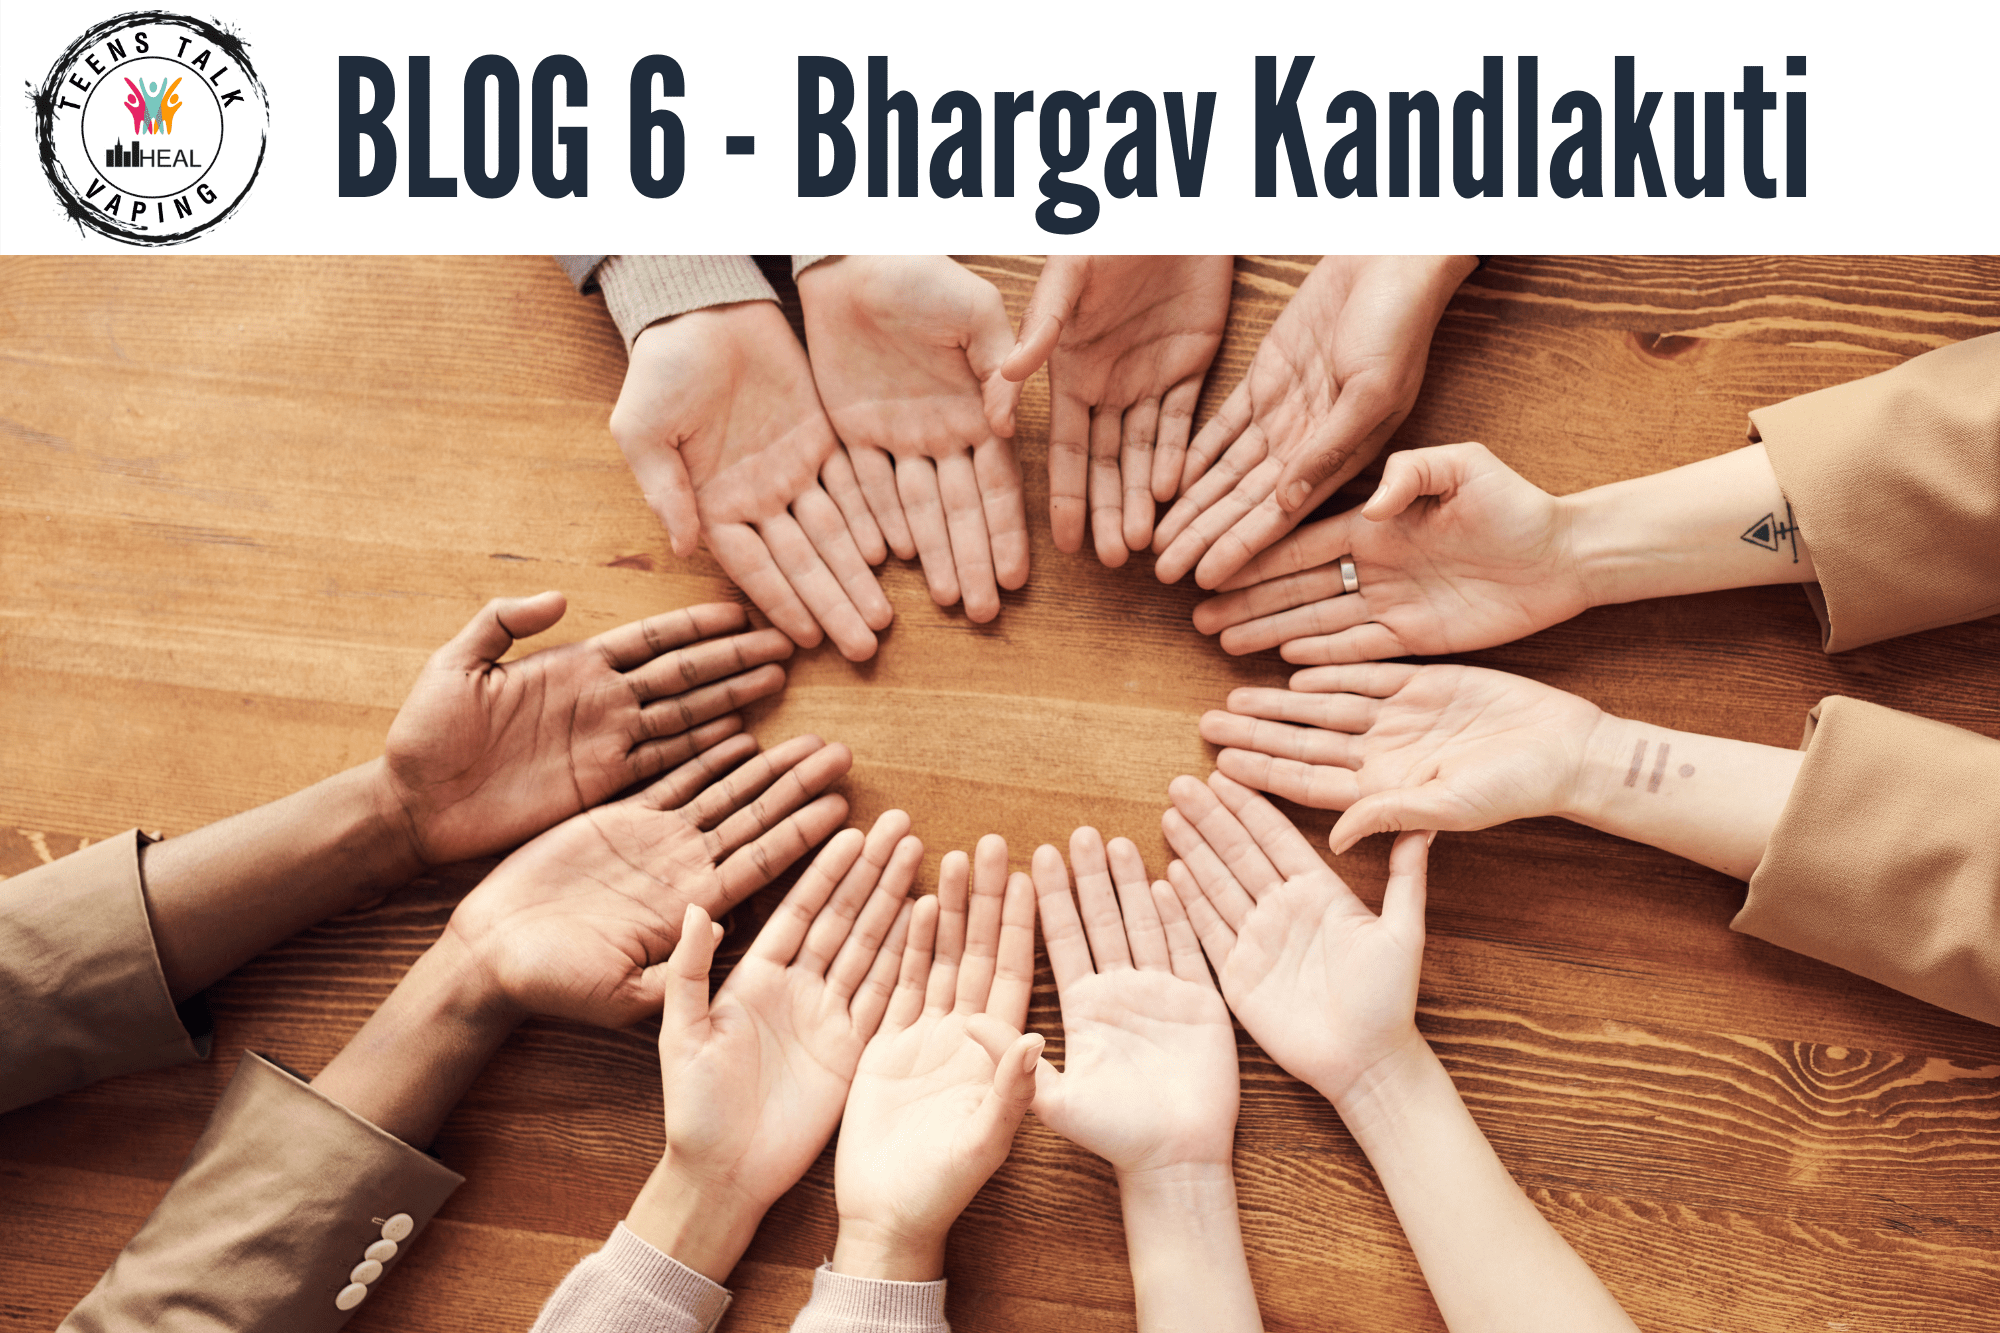 TTV Blog 6 – Making sure to be Inclusive by Bhargav